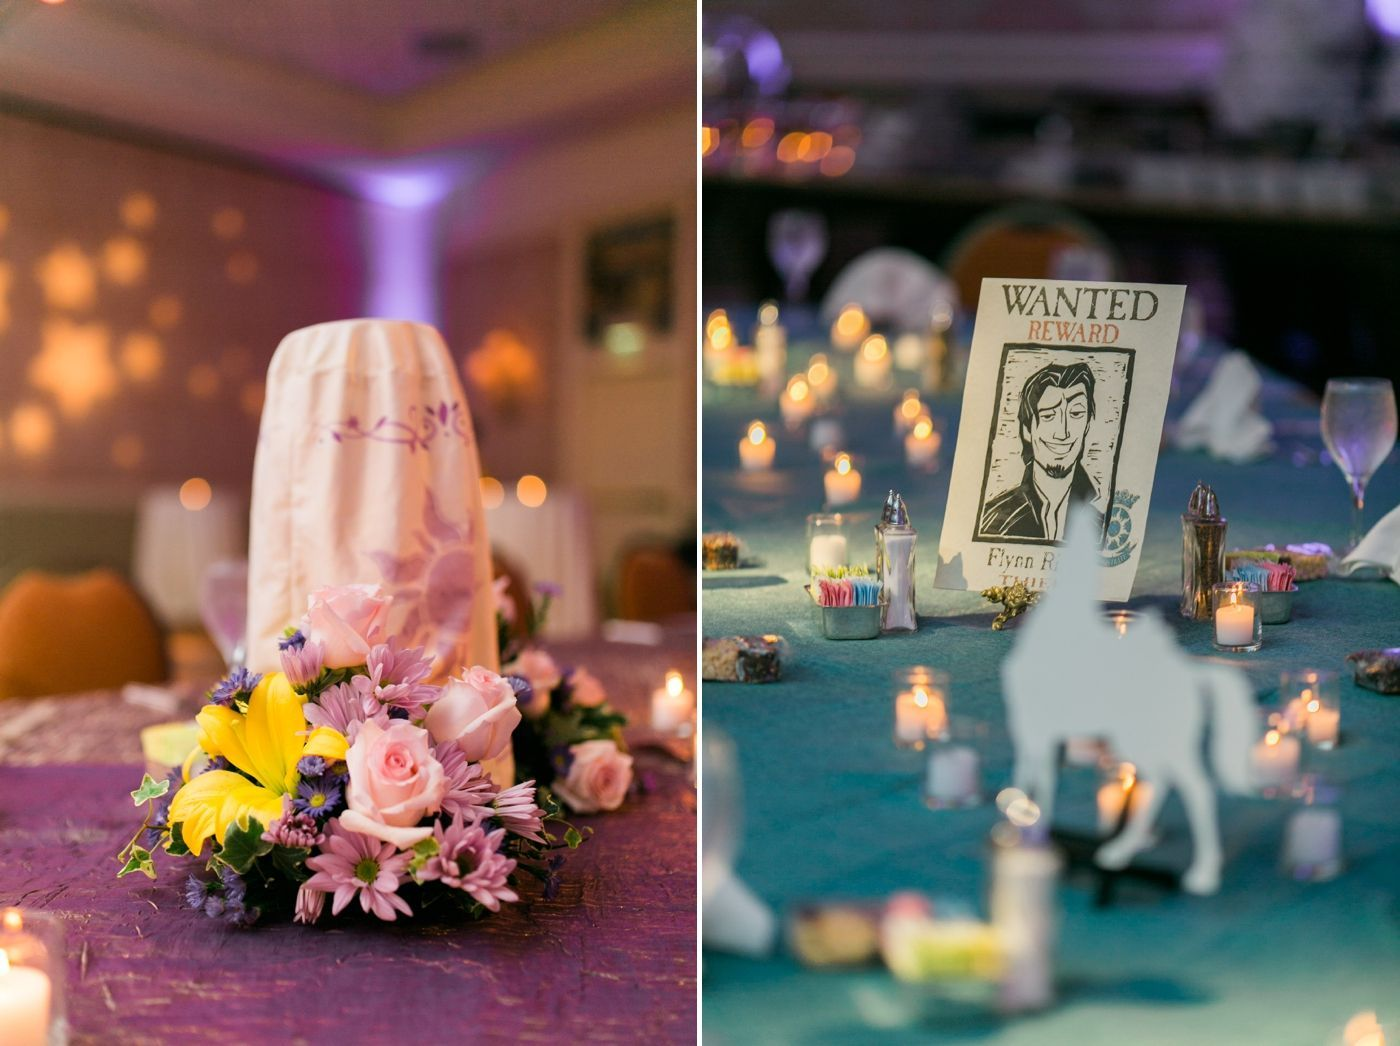 tangled wedding at disney world in orlando fl | rapunzel and